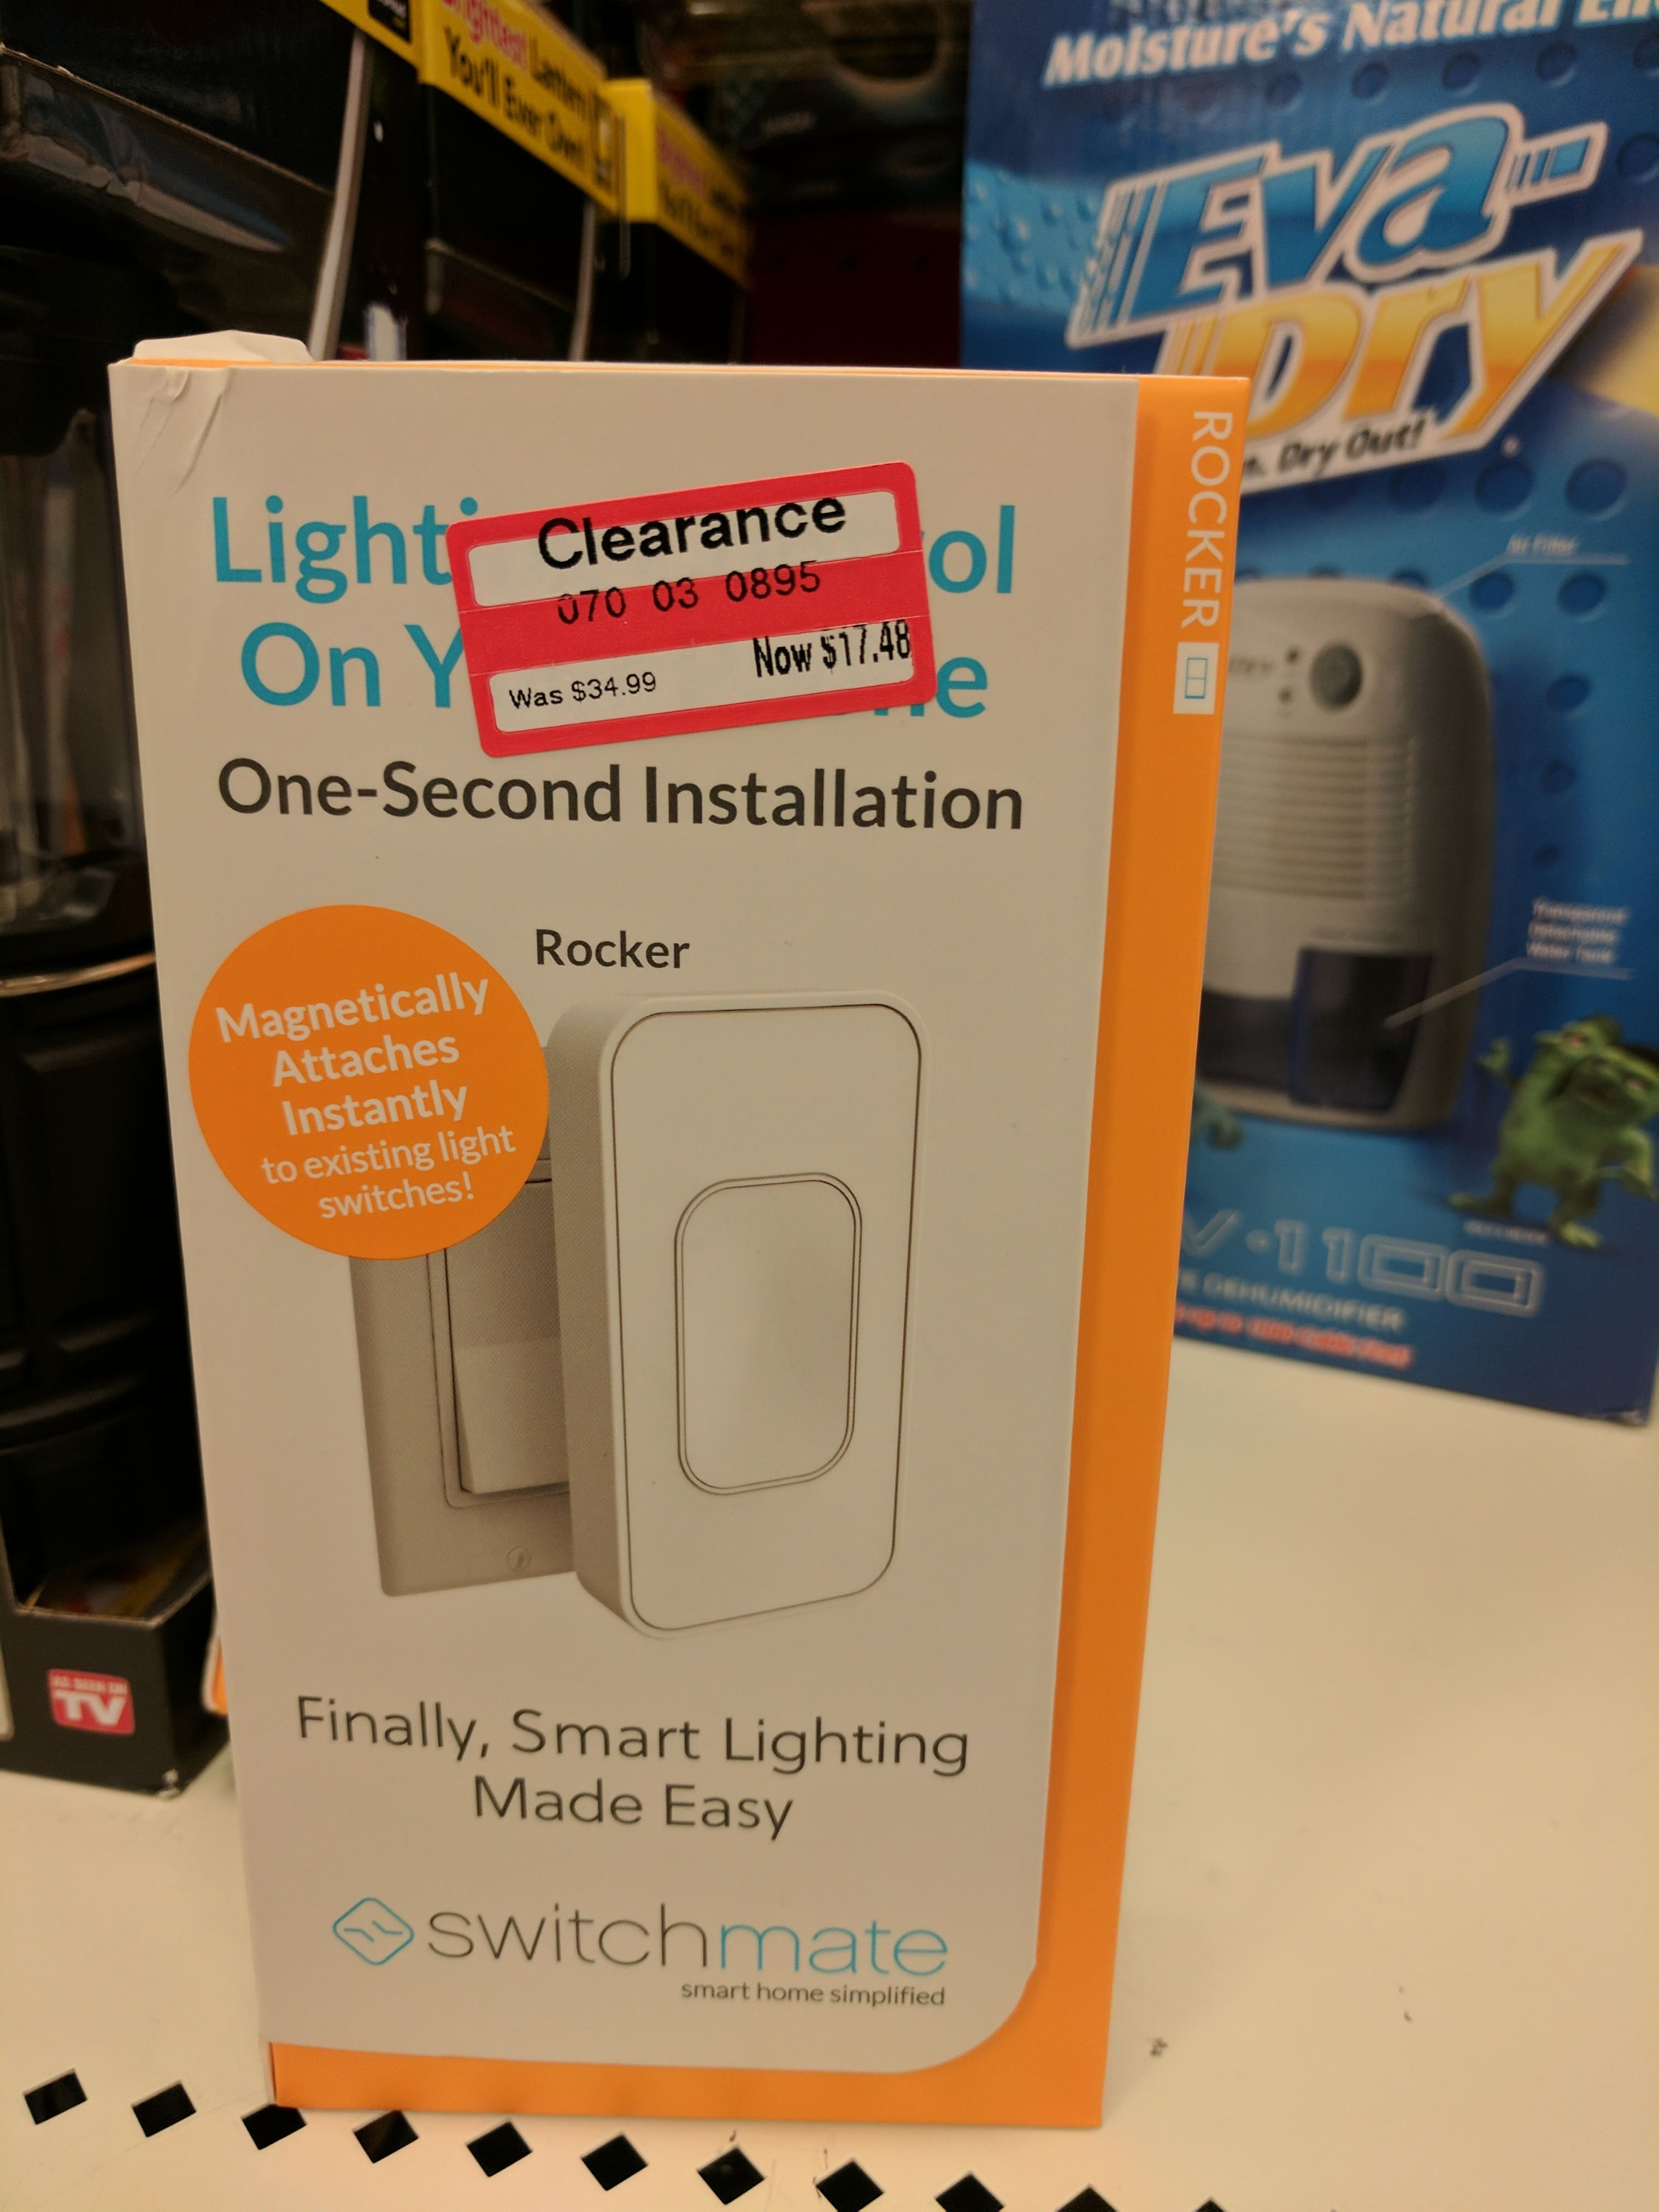 Switchmate Smart Light Magnetic Toggle Switch - Target B&M YMMV - $17.48